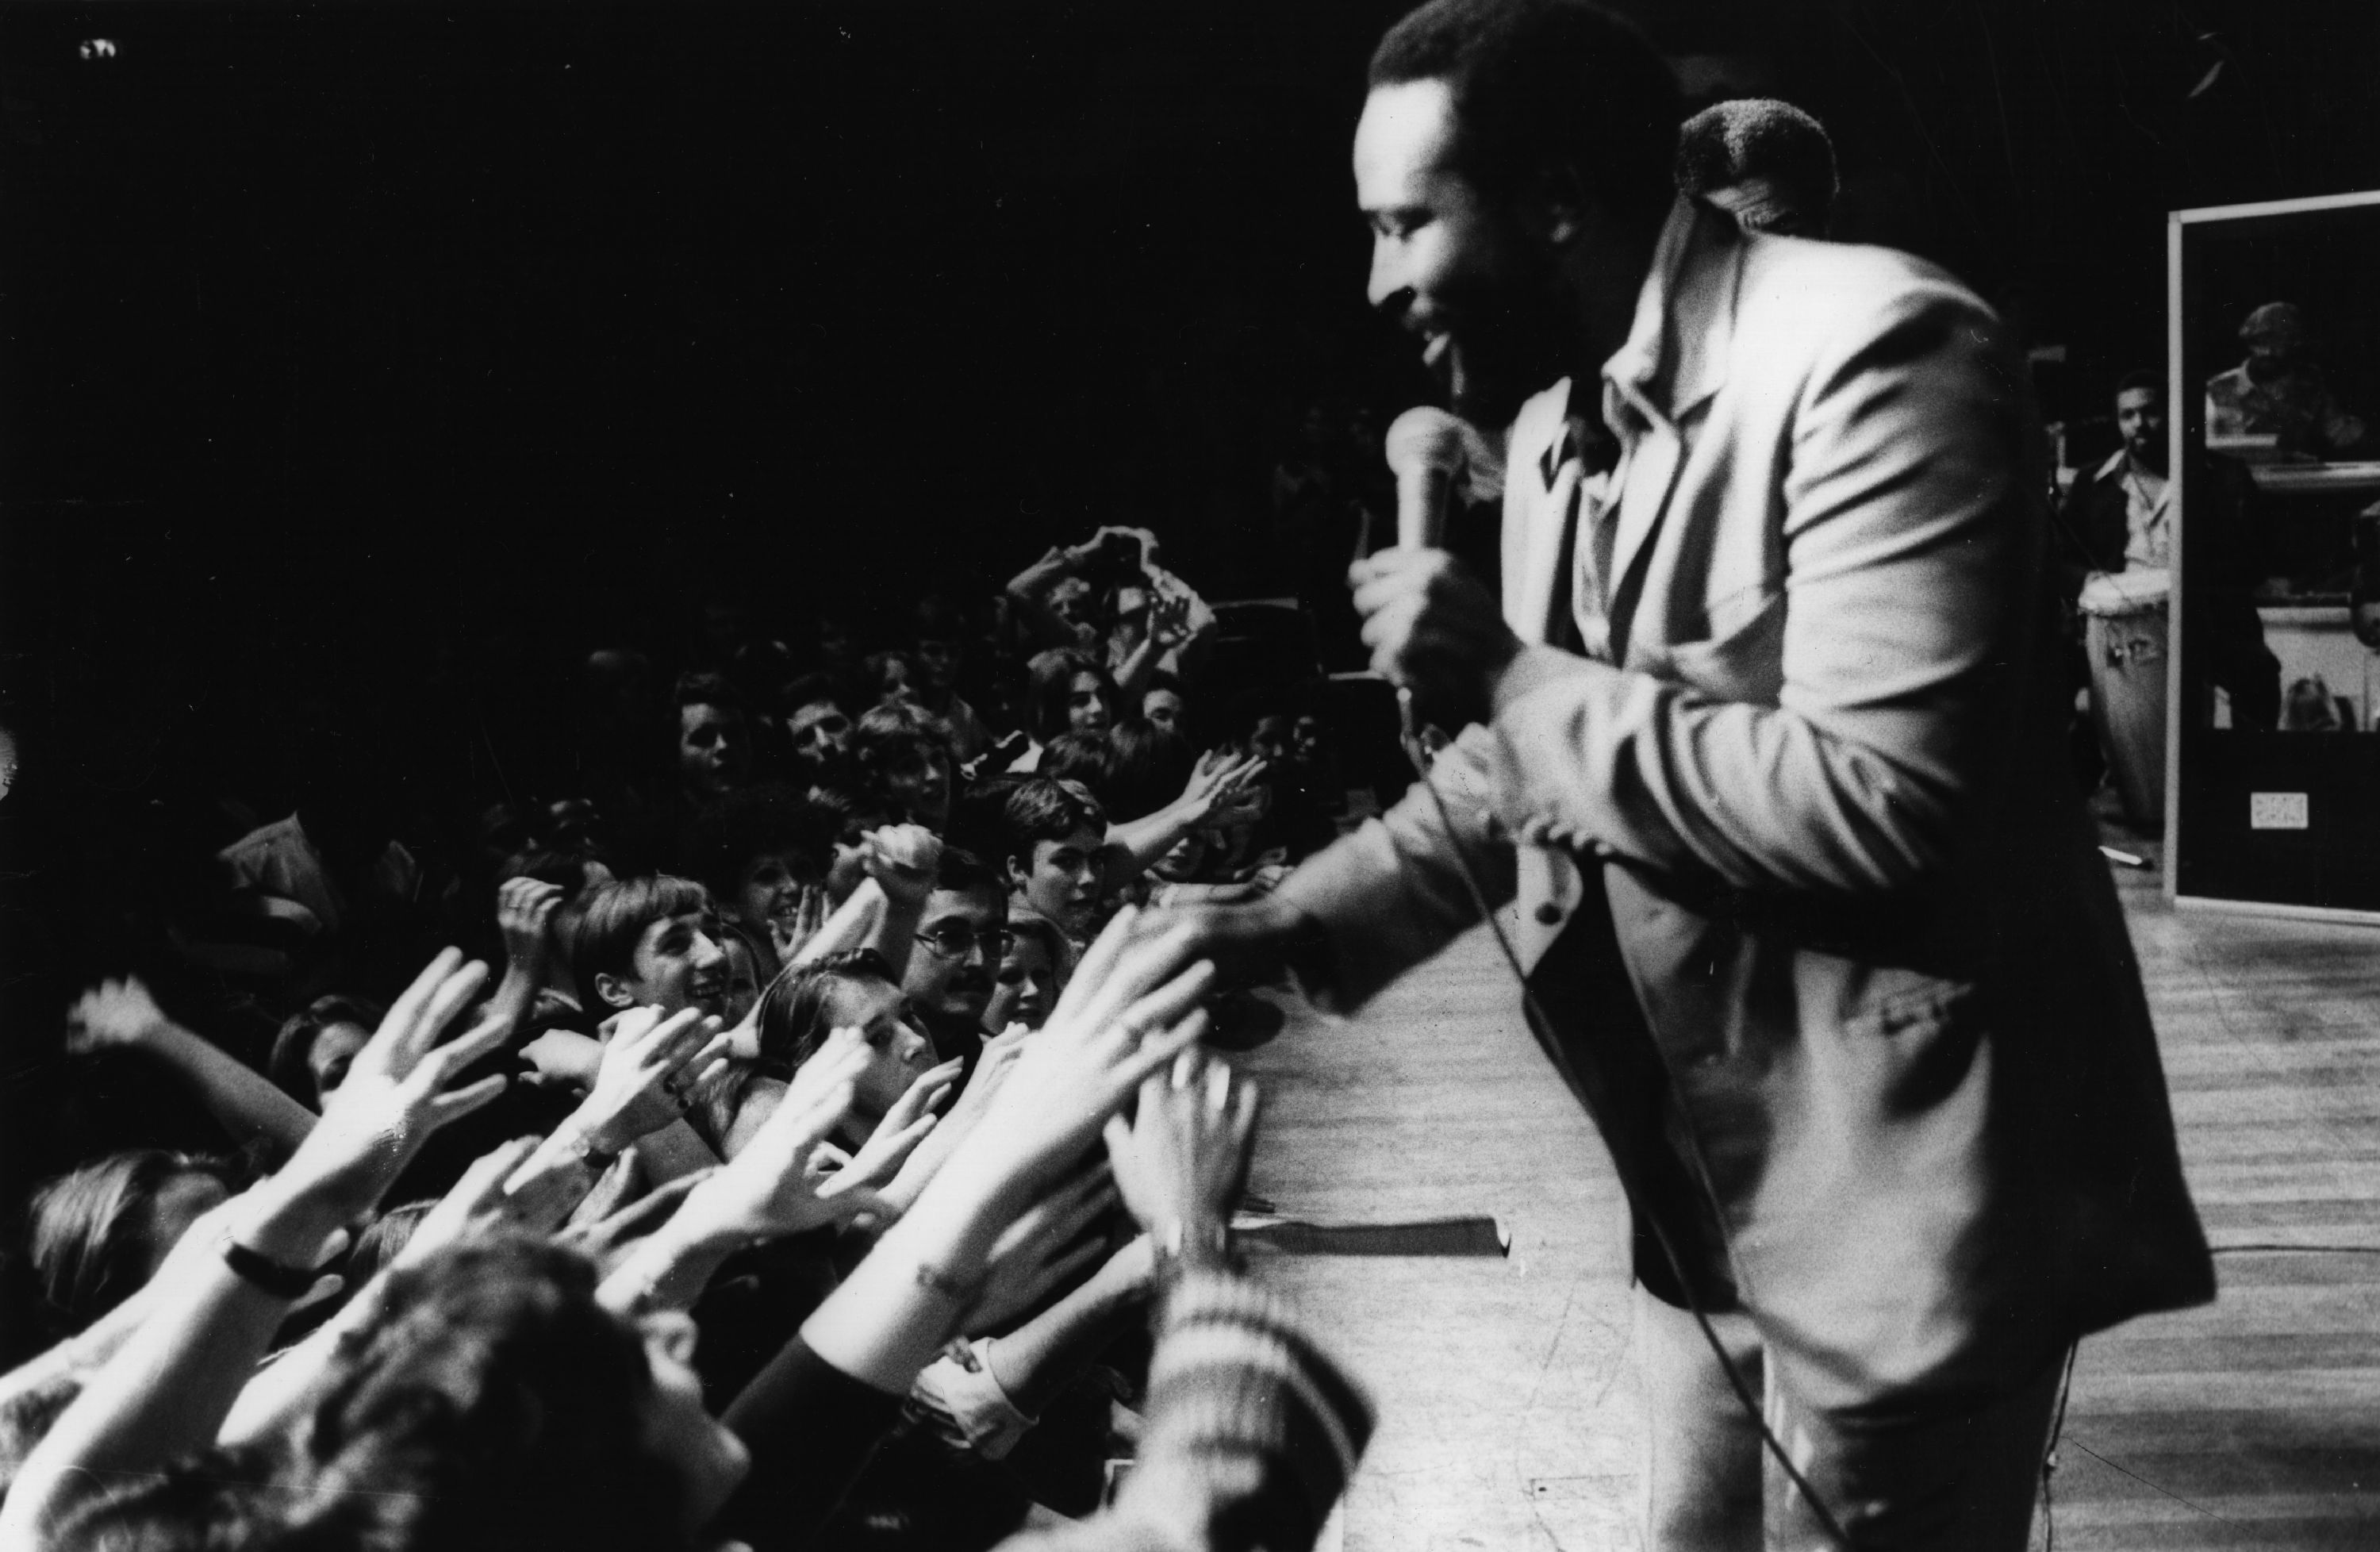 Marvin Gaye le 29 septembre 1976, lors d'un concert au Royal Albert Hall.